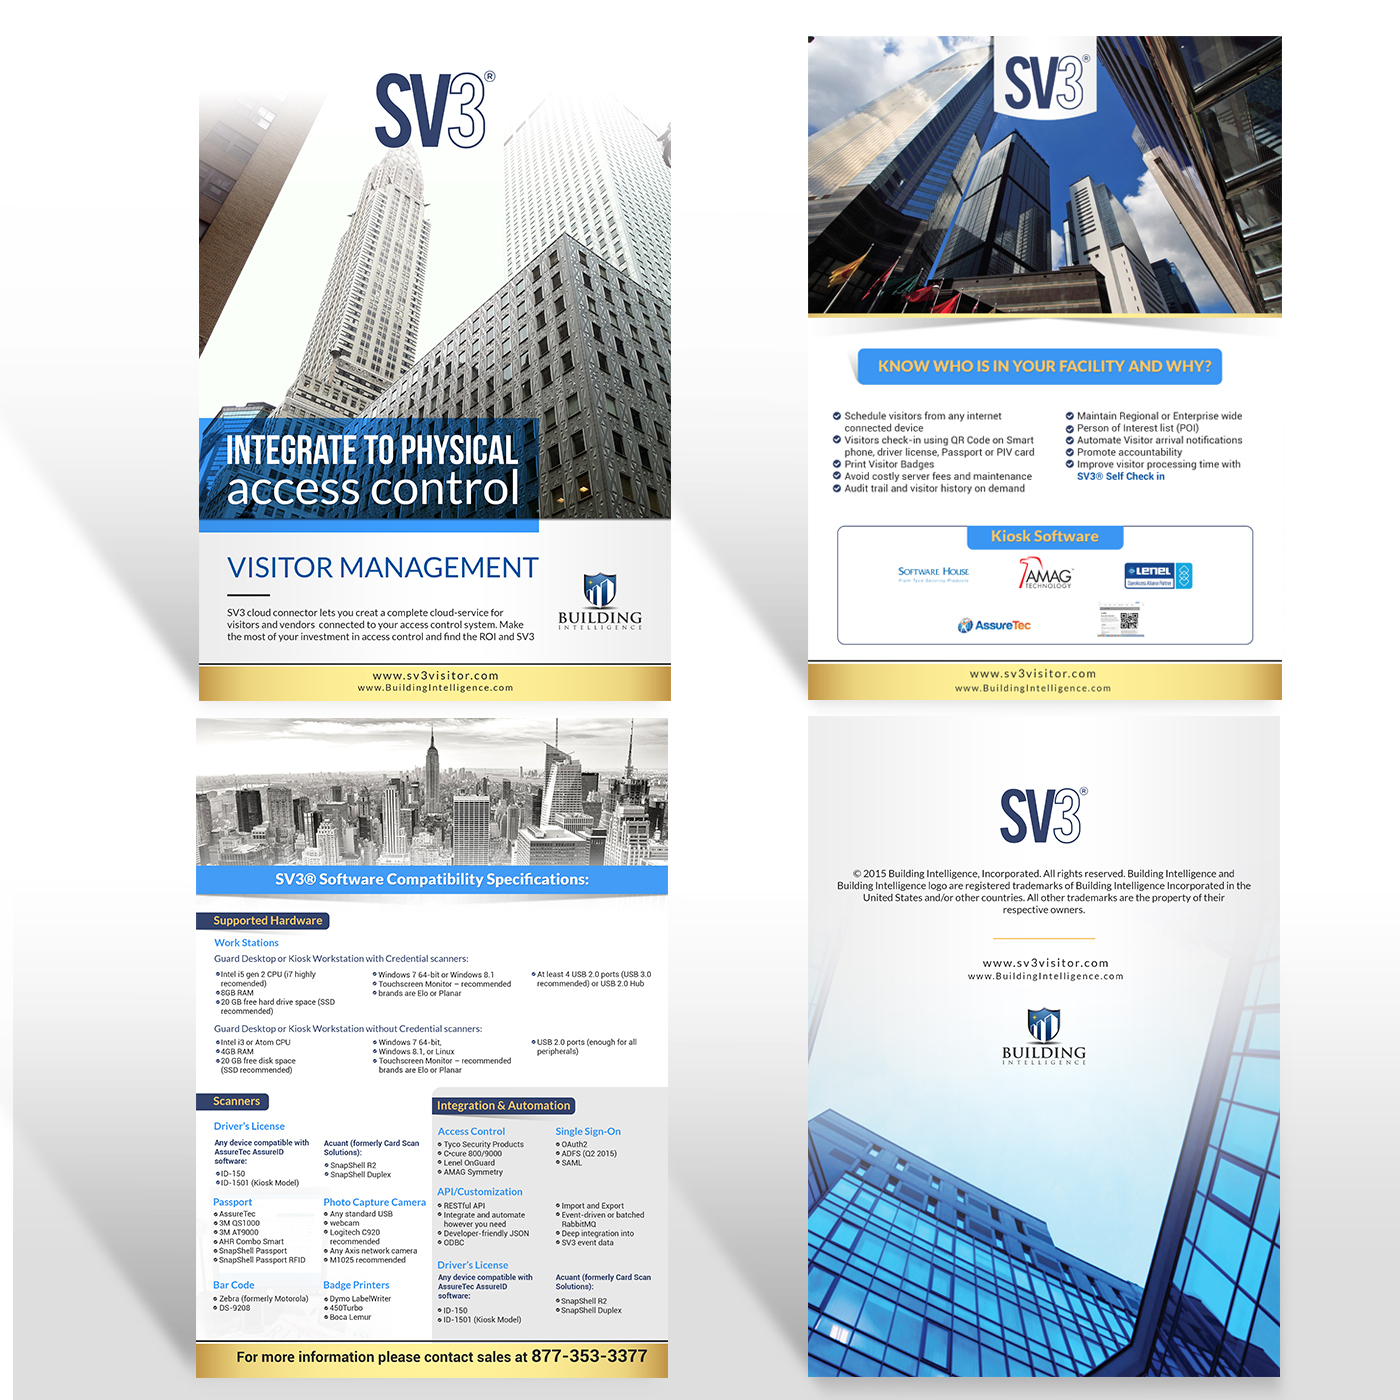 Serious, Modern, Security Flyer Design for Building Intelligence Inc